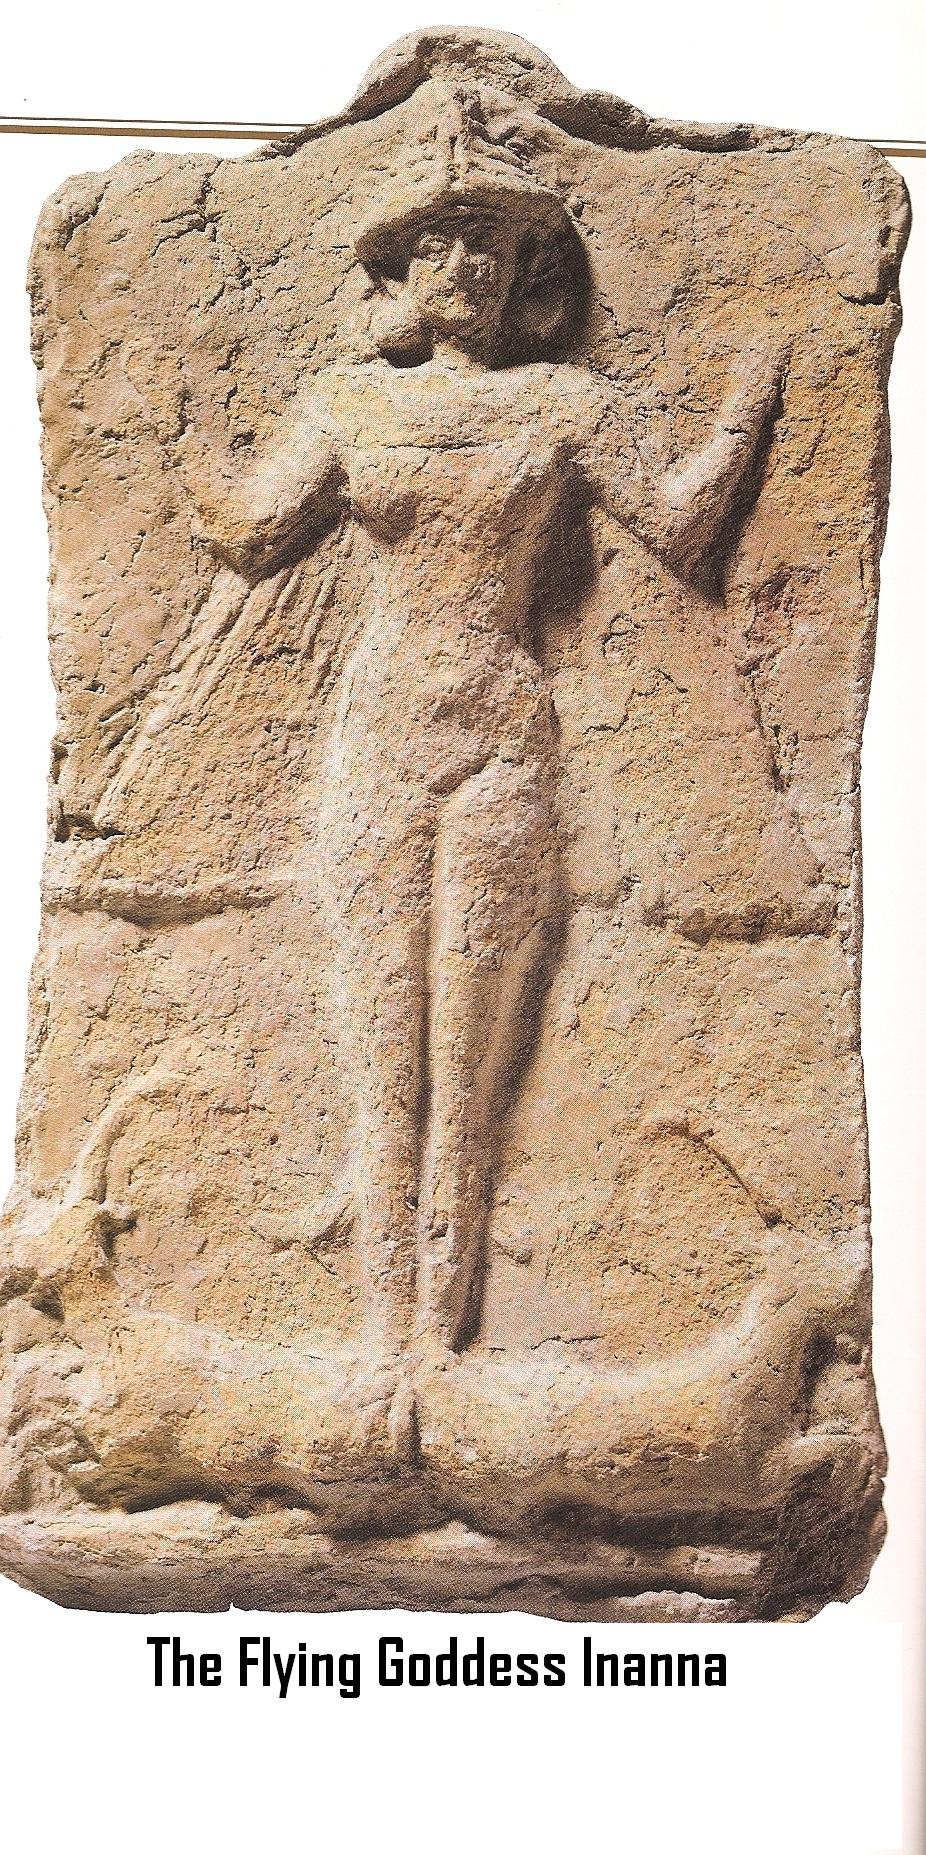 2h - flying Goddess of Love, loved by many gods & dozens of mixed-breed kings, all  throughout the early history of ancient mankind, Inanna walked with, talked with, & had sex with the giant mixed-breed offspring of the gods, artefacts of the gods & their offspring are being destroyed by Radical Islam, fearing the ancient evidence directly contradicting their 7th century A.D. teachings, could cause them problems with followers